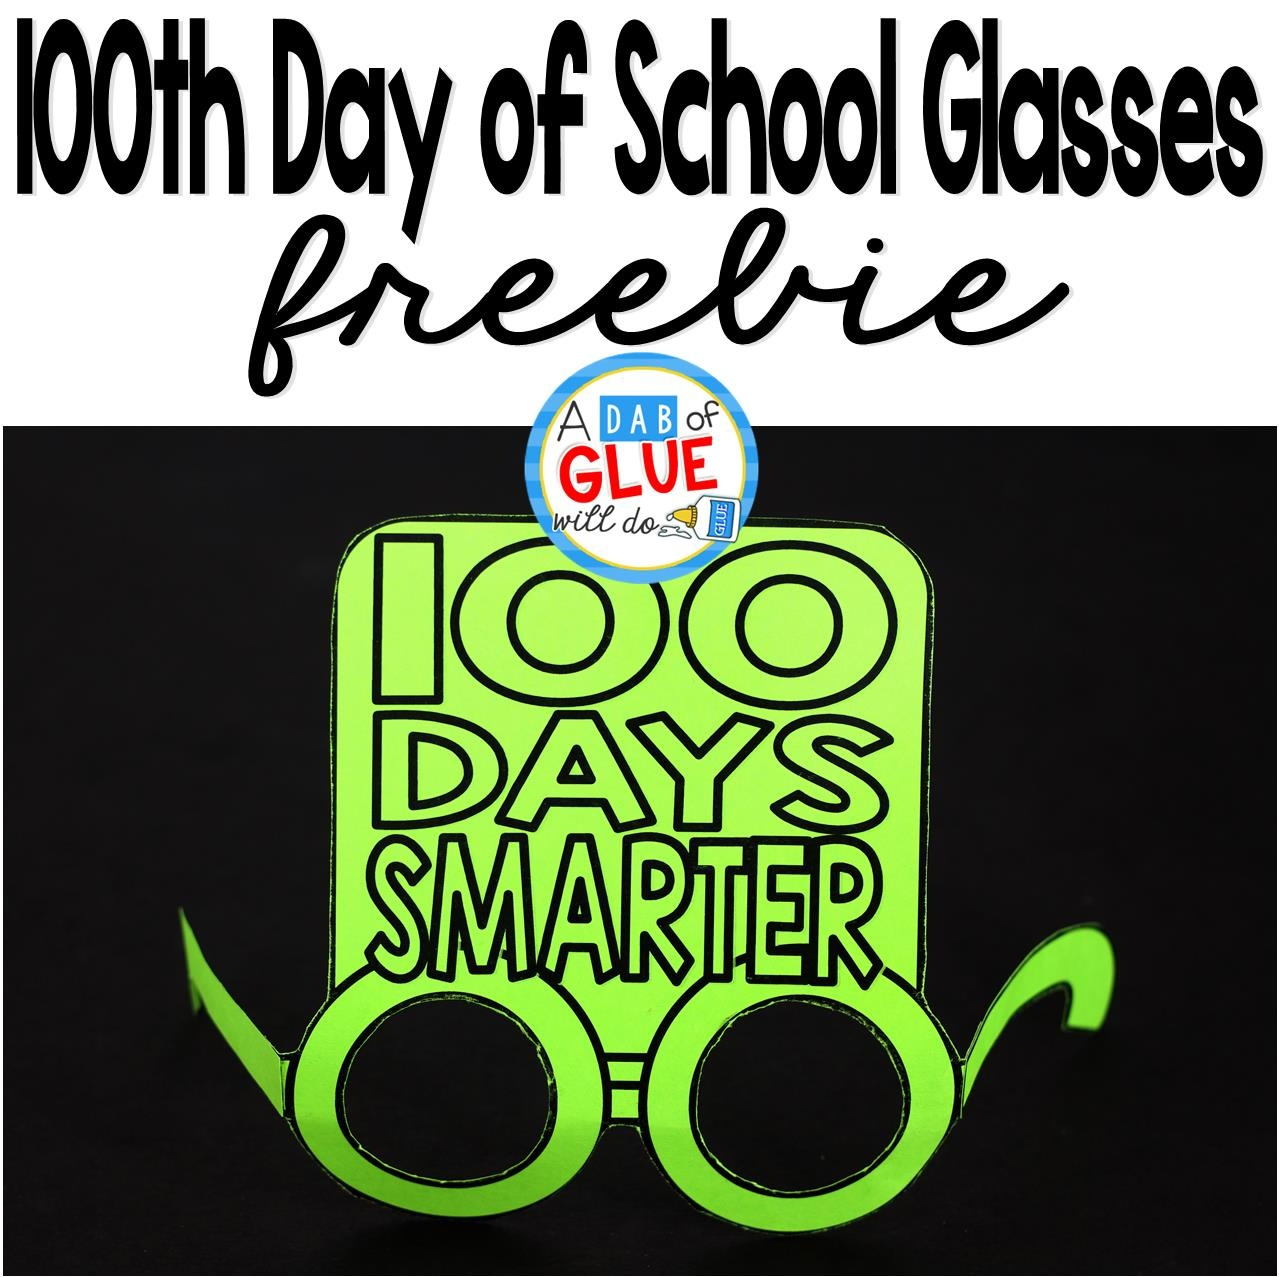 100Th Day Of School Glasses - - 100Th Day Of School Printable Glasses Free